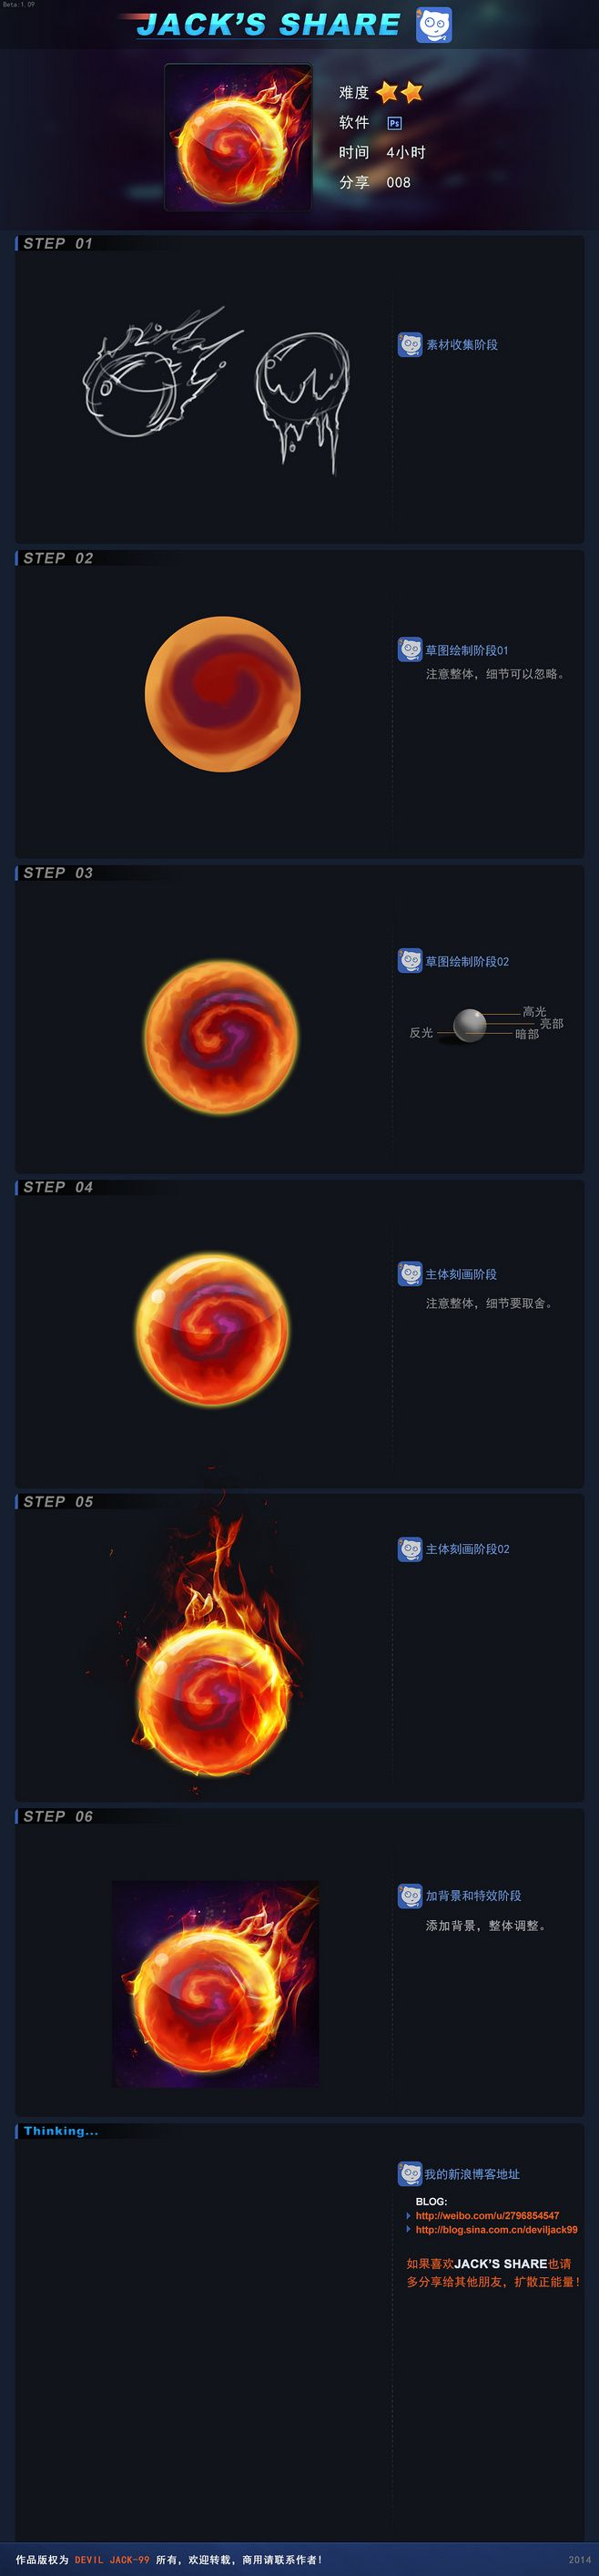 博客:http://blog.sina.... fireball fire magic spell effect resource tool how to tutorial instructions | Create your own roleplaying game material w/ RPG Bard: www.rpgbard.com | Writing inspiration for Dungeons and Dragons DND D&D Pathfinder PFRPG Warhammer 40k Star Wars Shadowrun Call of Cthulhu Lord of the Rings LoTR + d20 fantasy science fiction scifi horror design | Not Trusty Sword art: click artwork for source